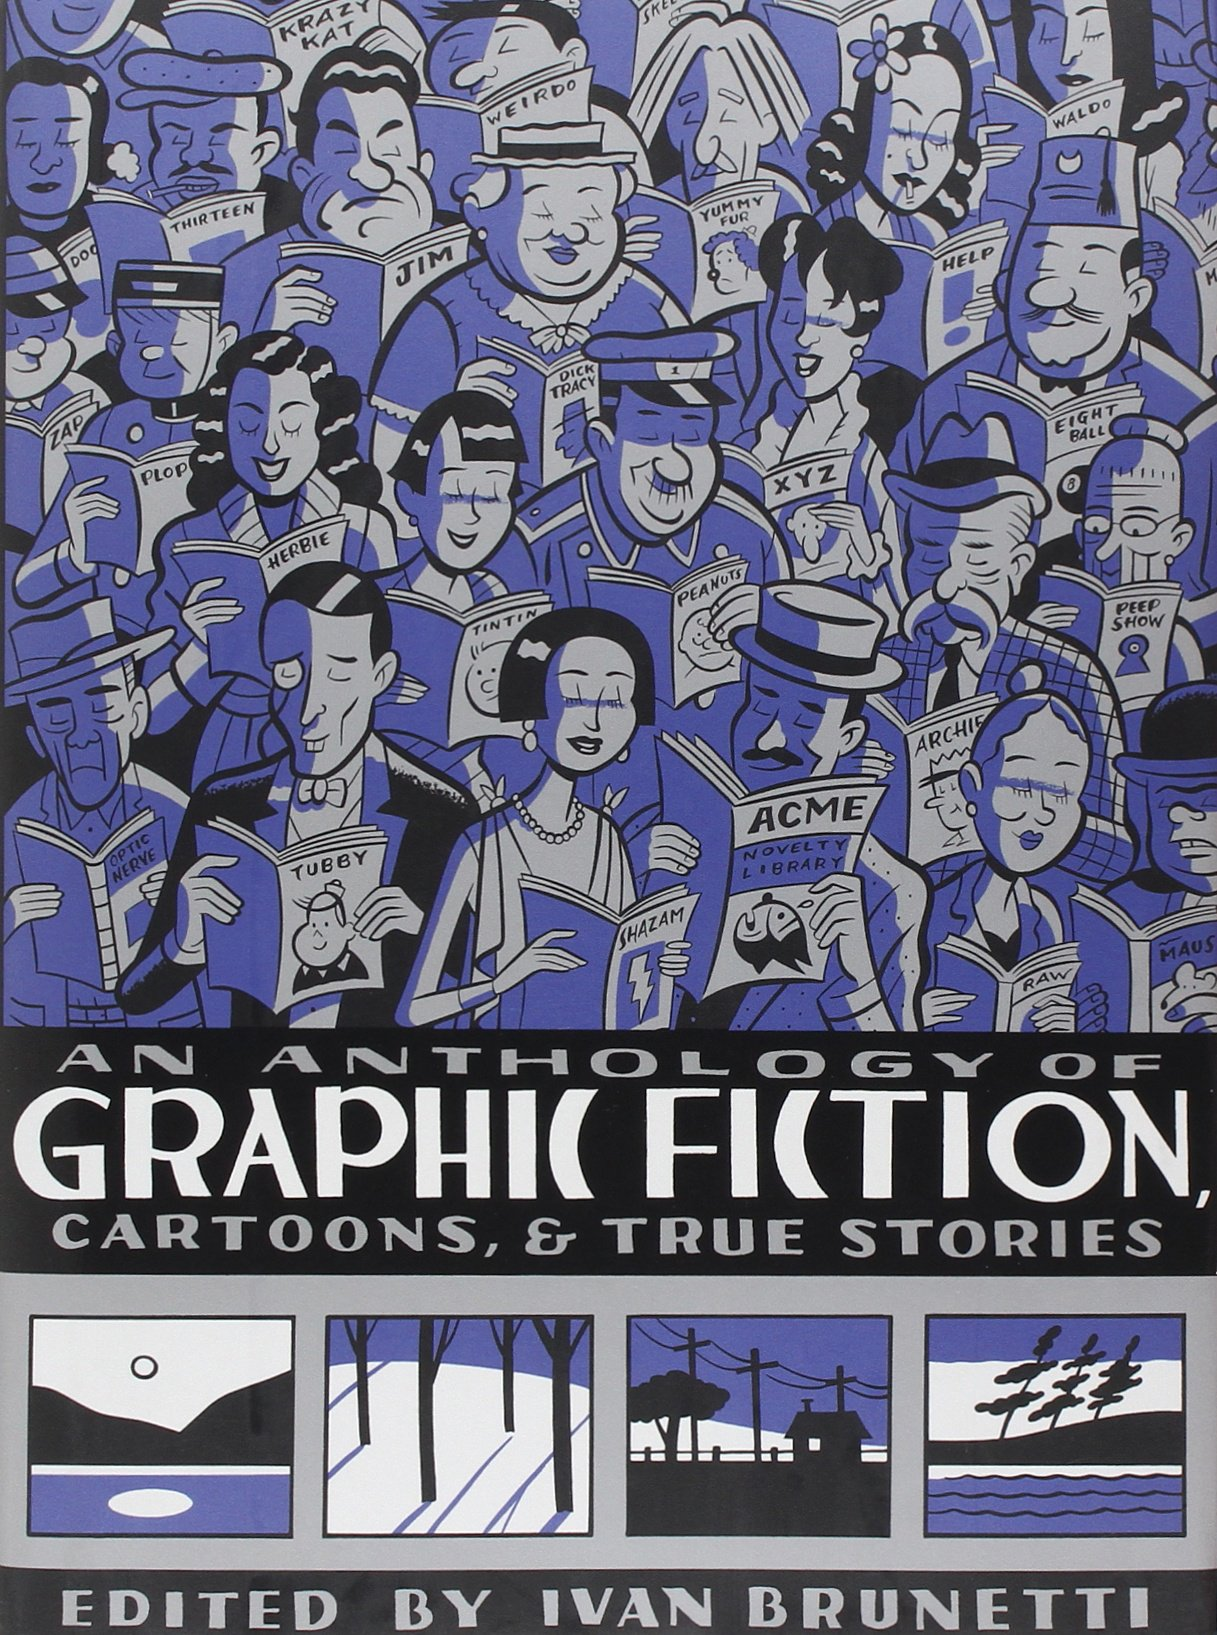 Image for An anthology of graphic fiction, cartoons, & true stories / edited by Ivan Brunetti